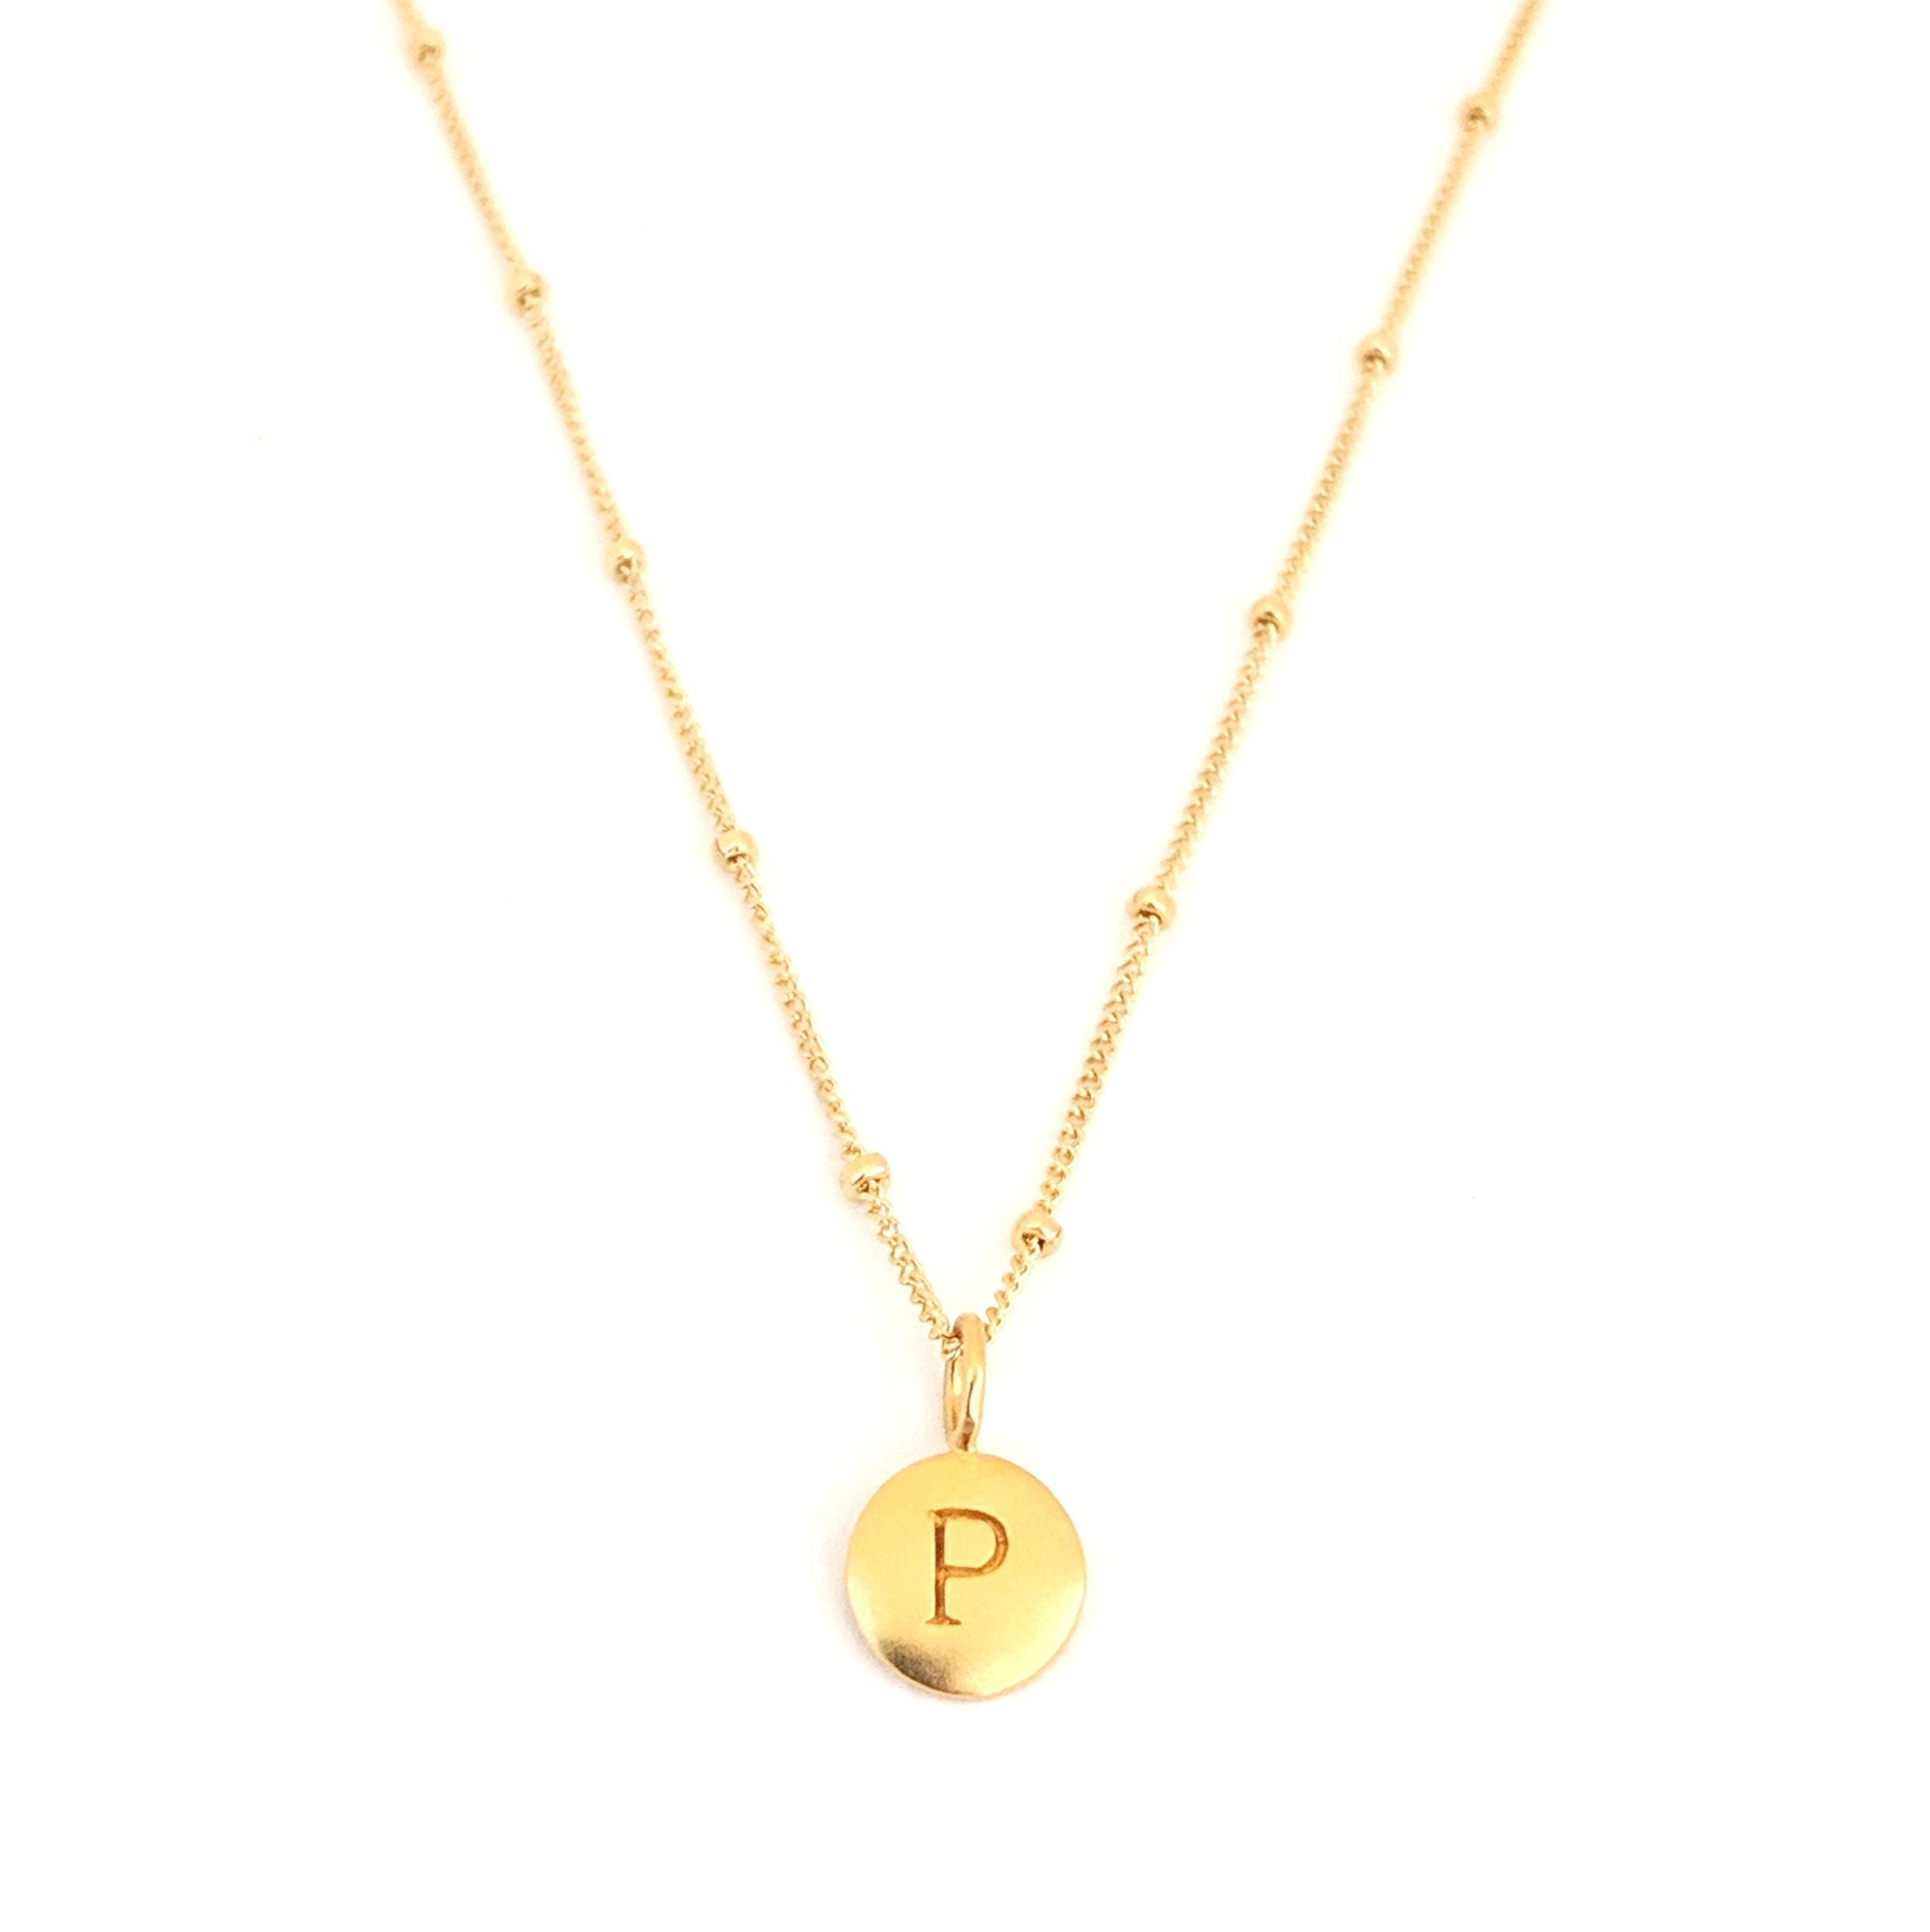 """P"" Mayfair Necklace"